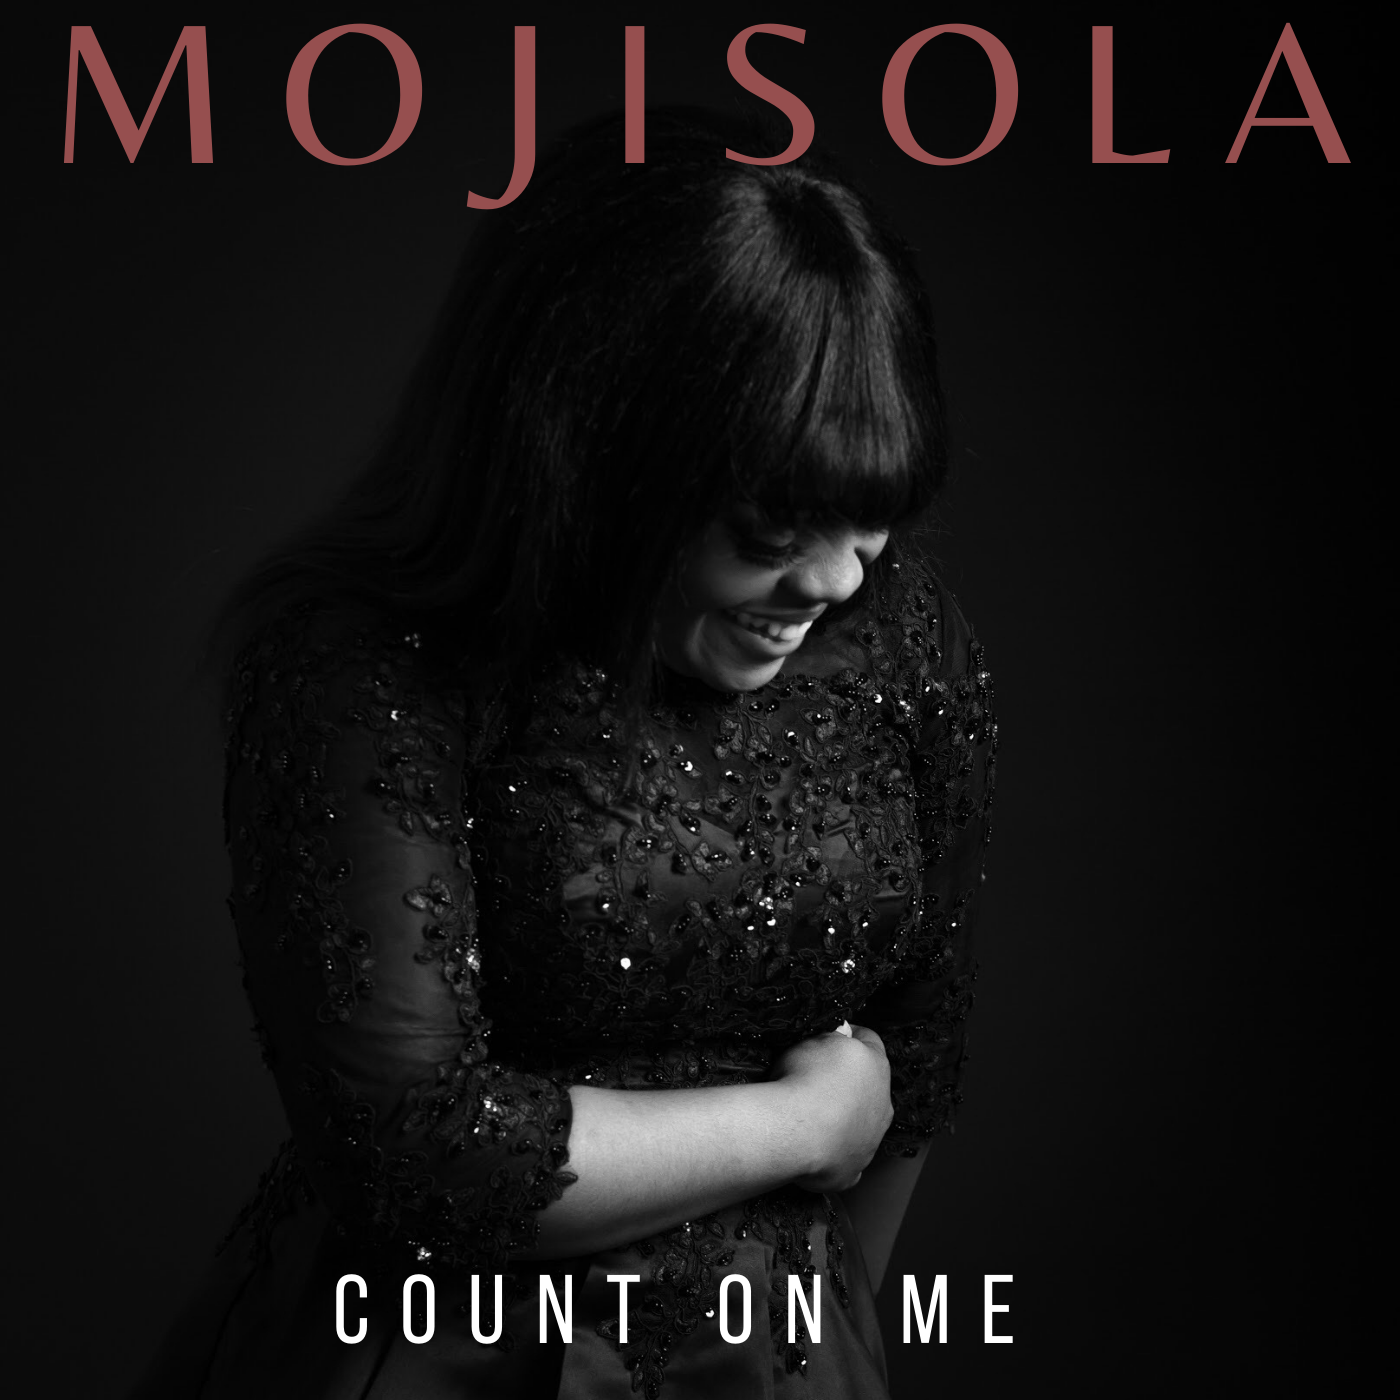 Mojisola - Count On Me Image